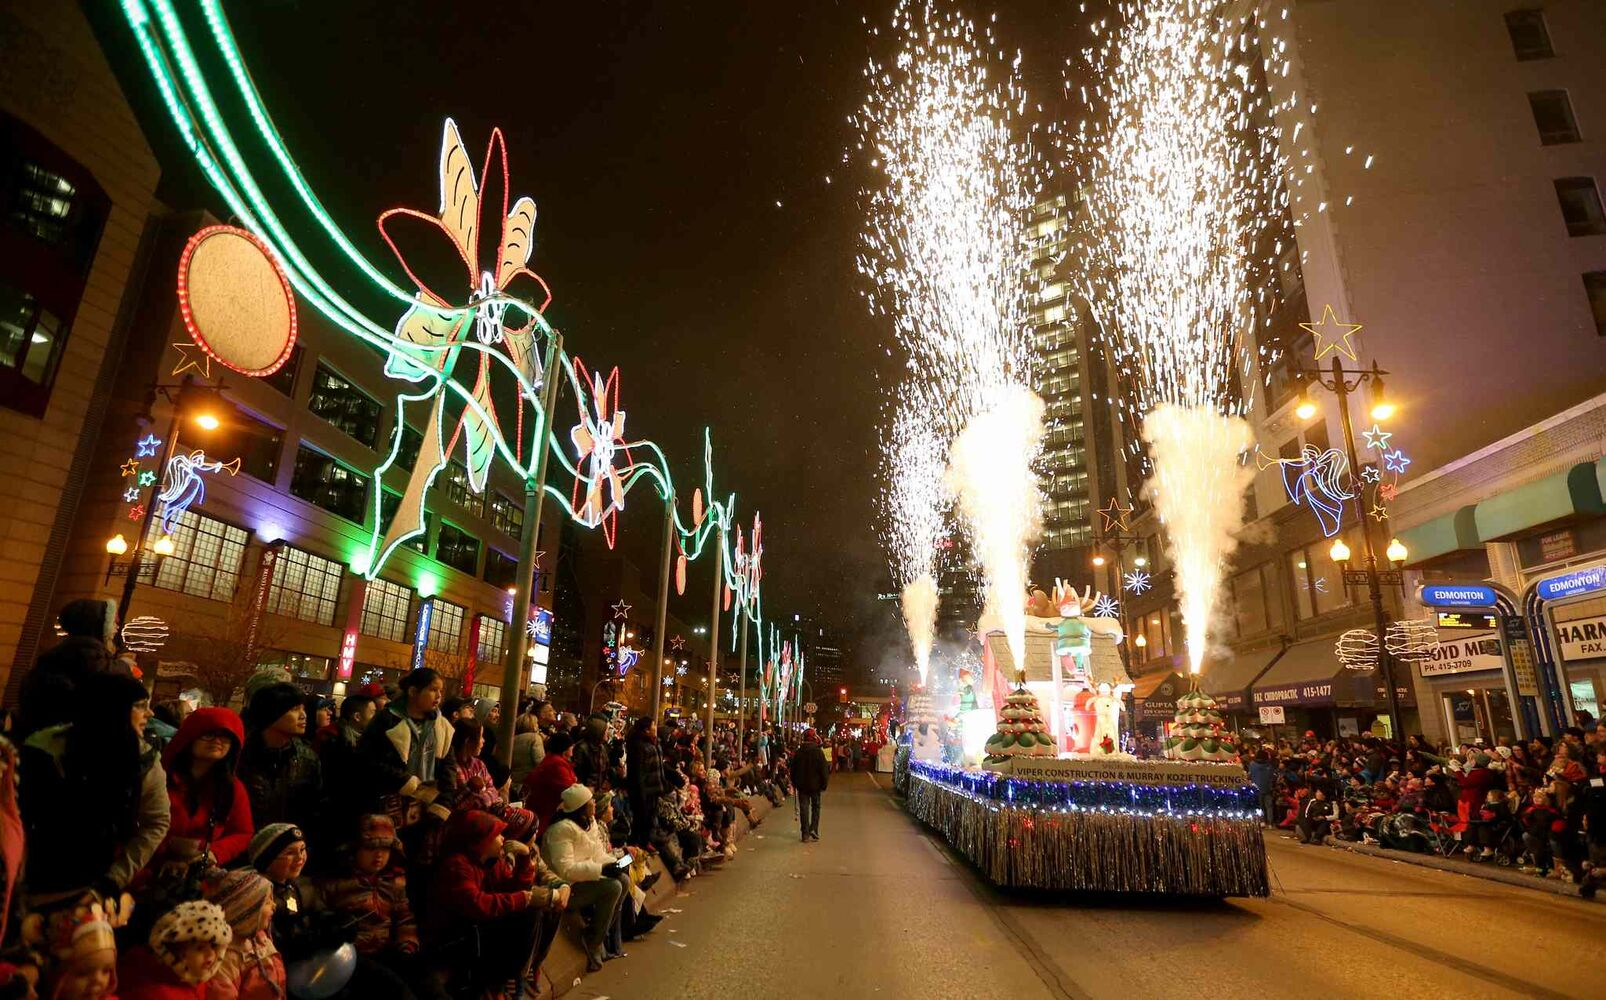 A float lets off some pyrotechnics. (TREVOR HAGAN / WINNIPEG FREE PRESS)